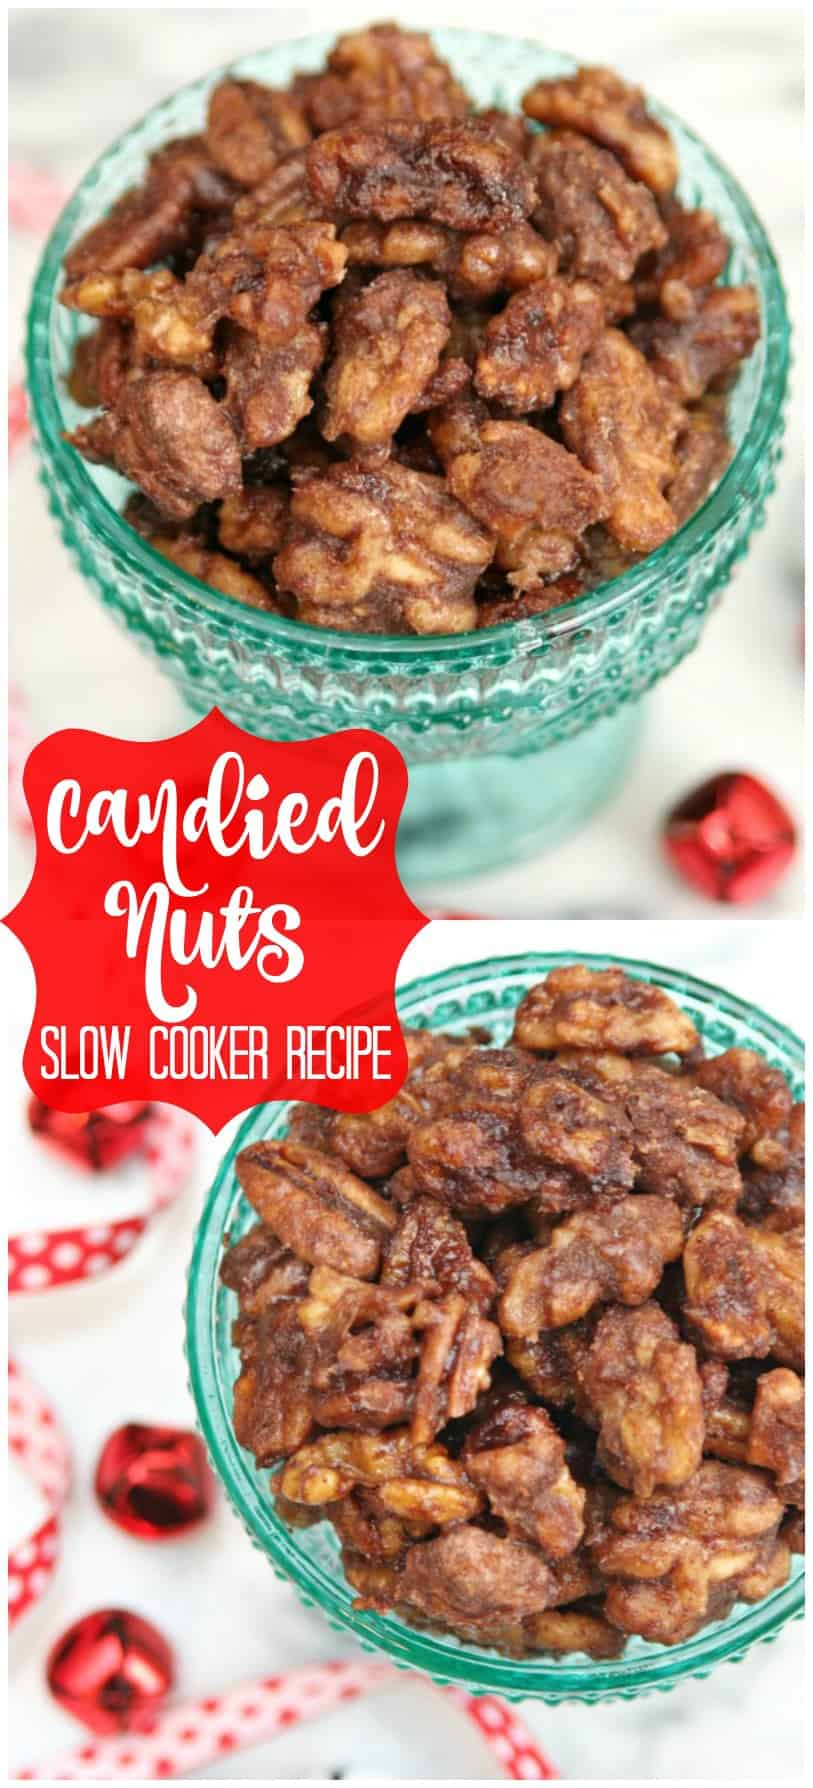 Candied Nuts Slow Cooker Recipe